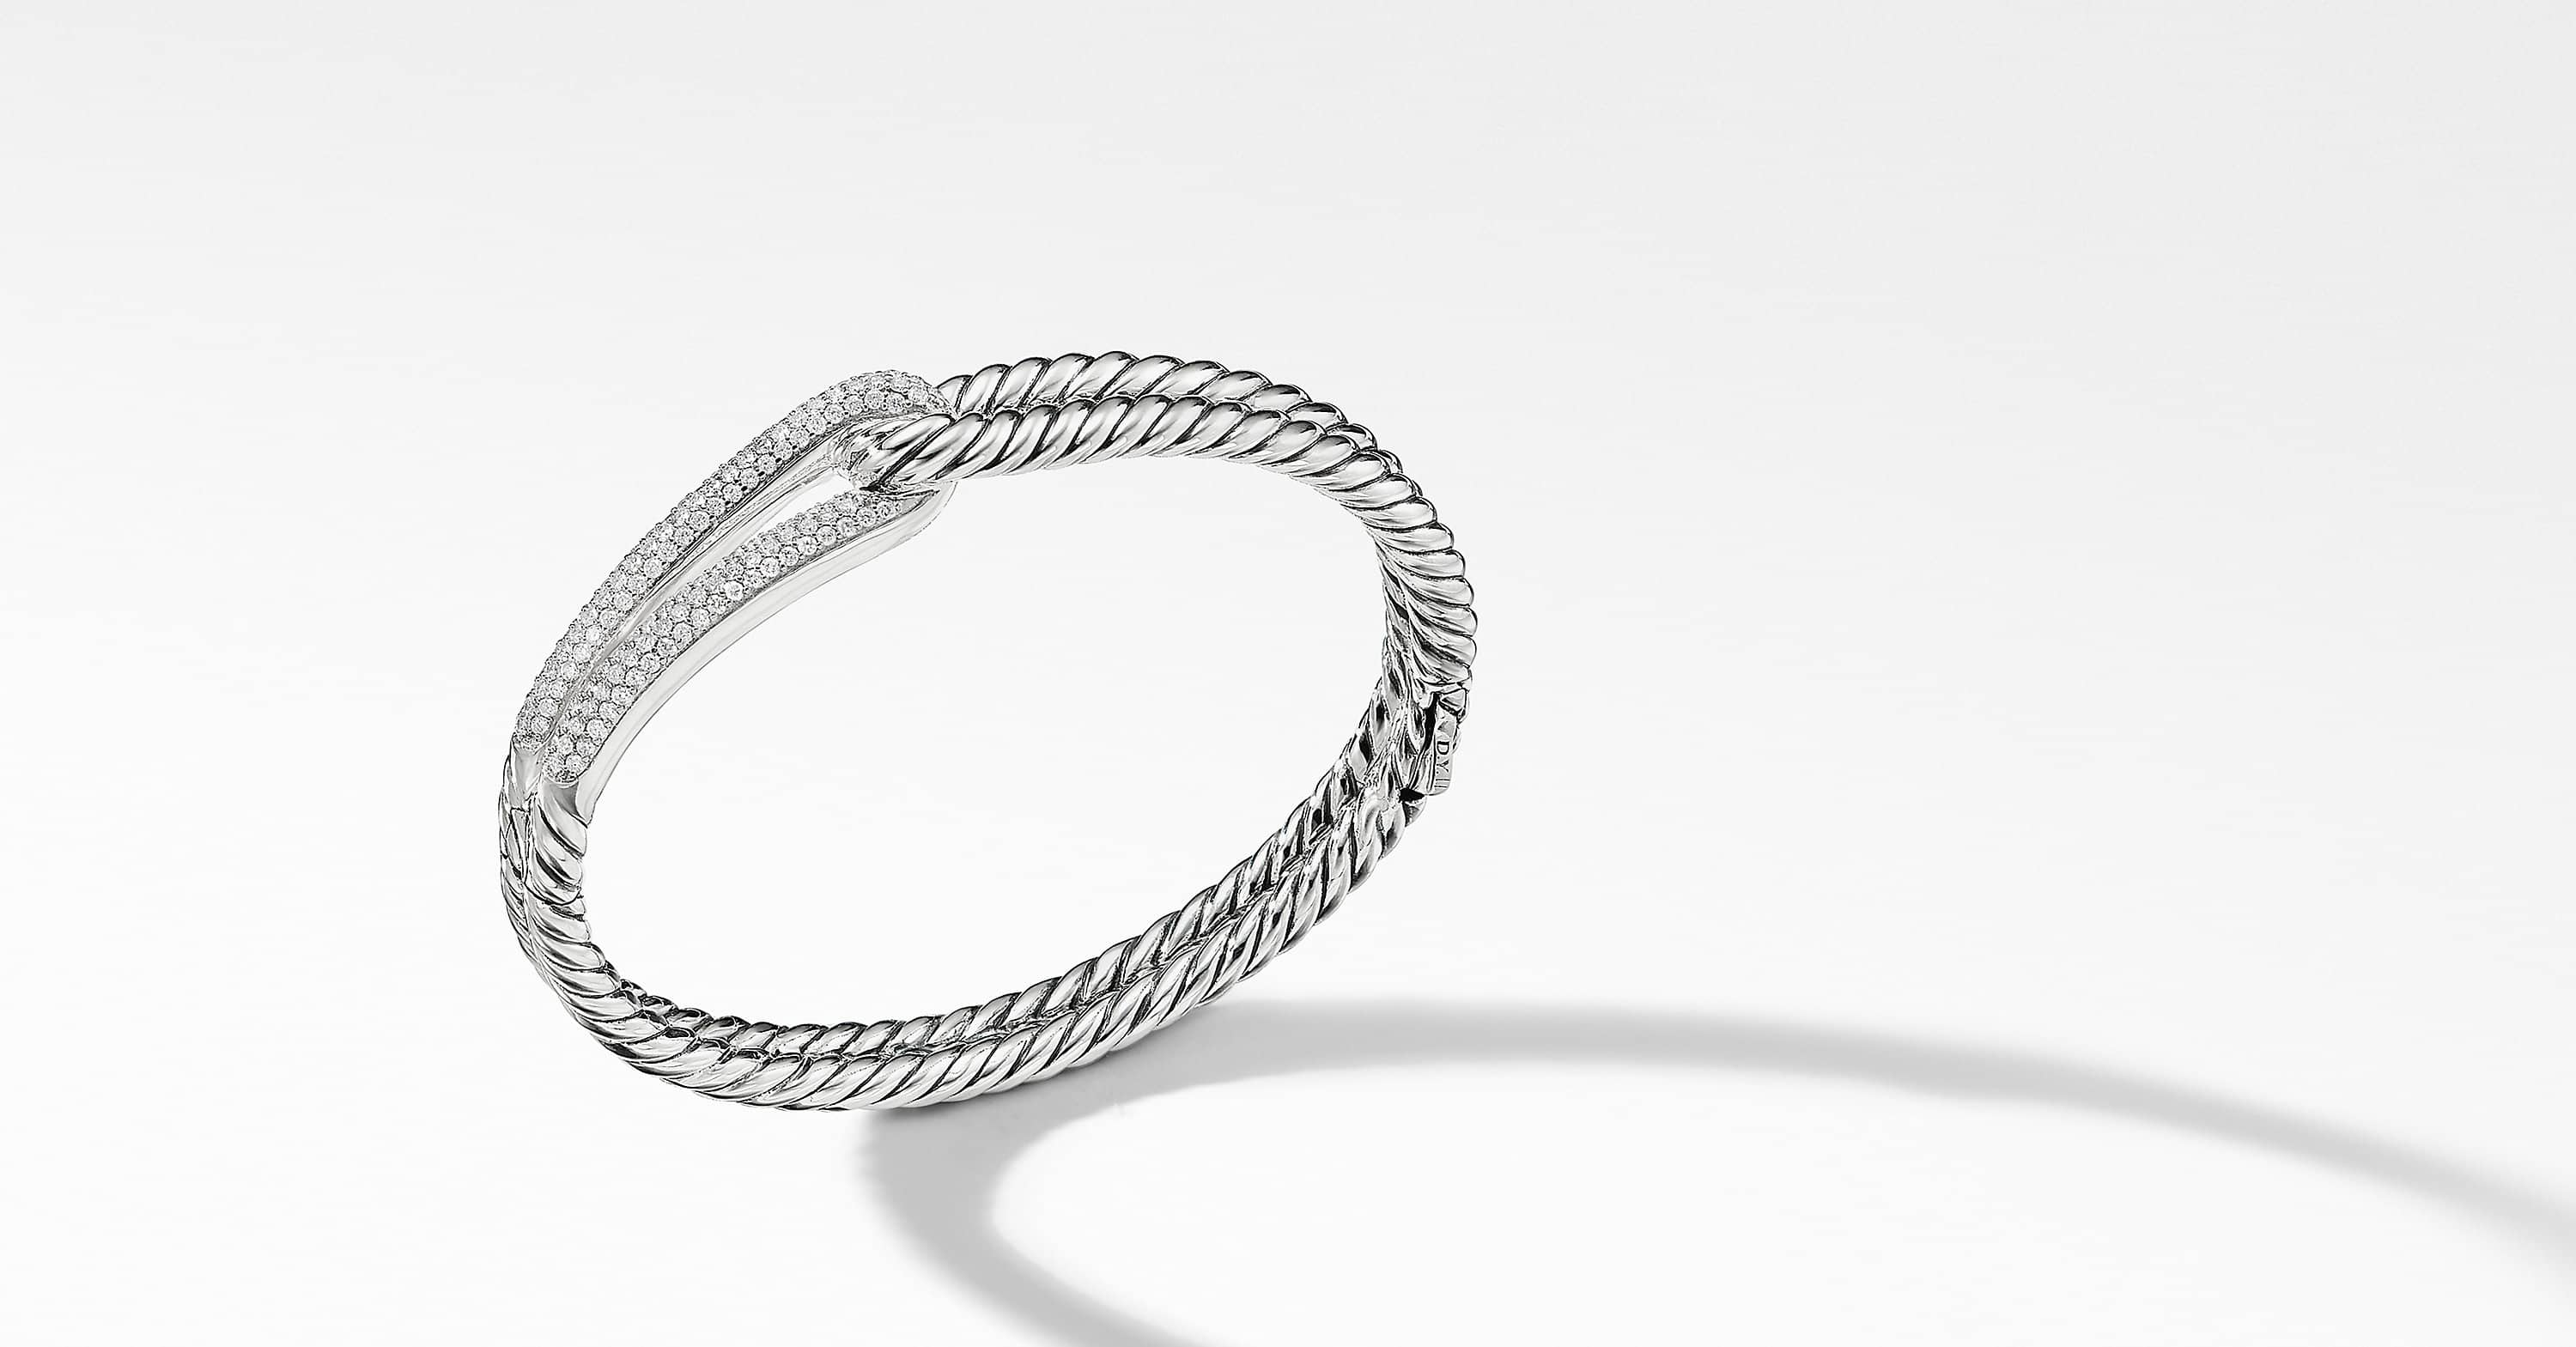 Labyrinth Single-Loop Bracelet with Diamonds, 10mm